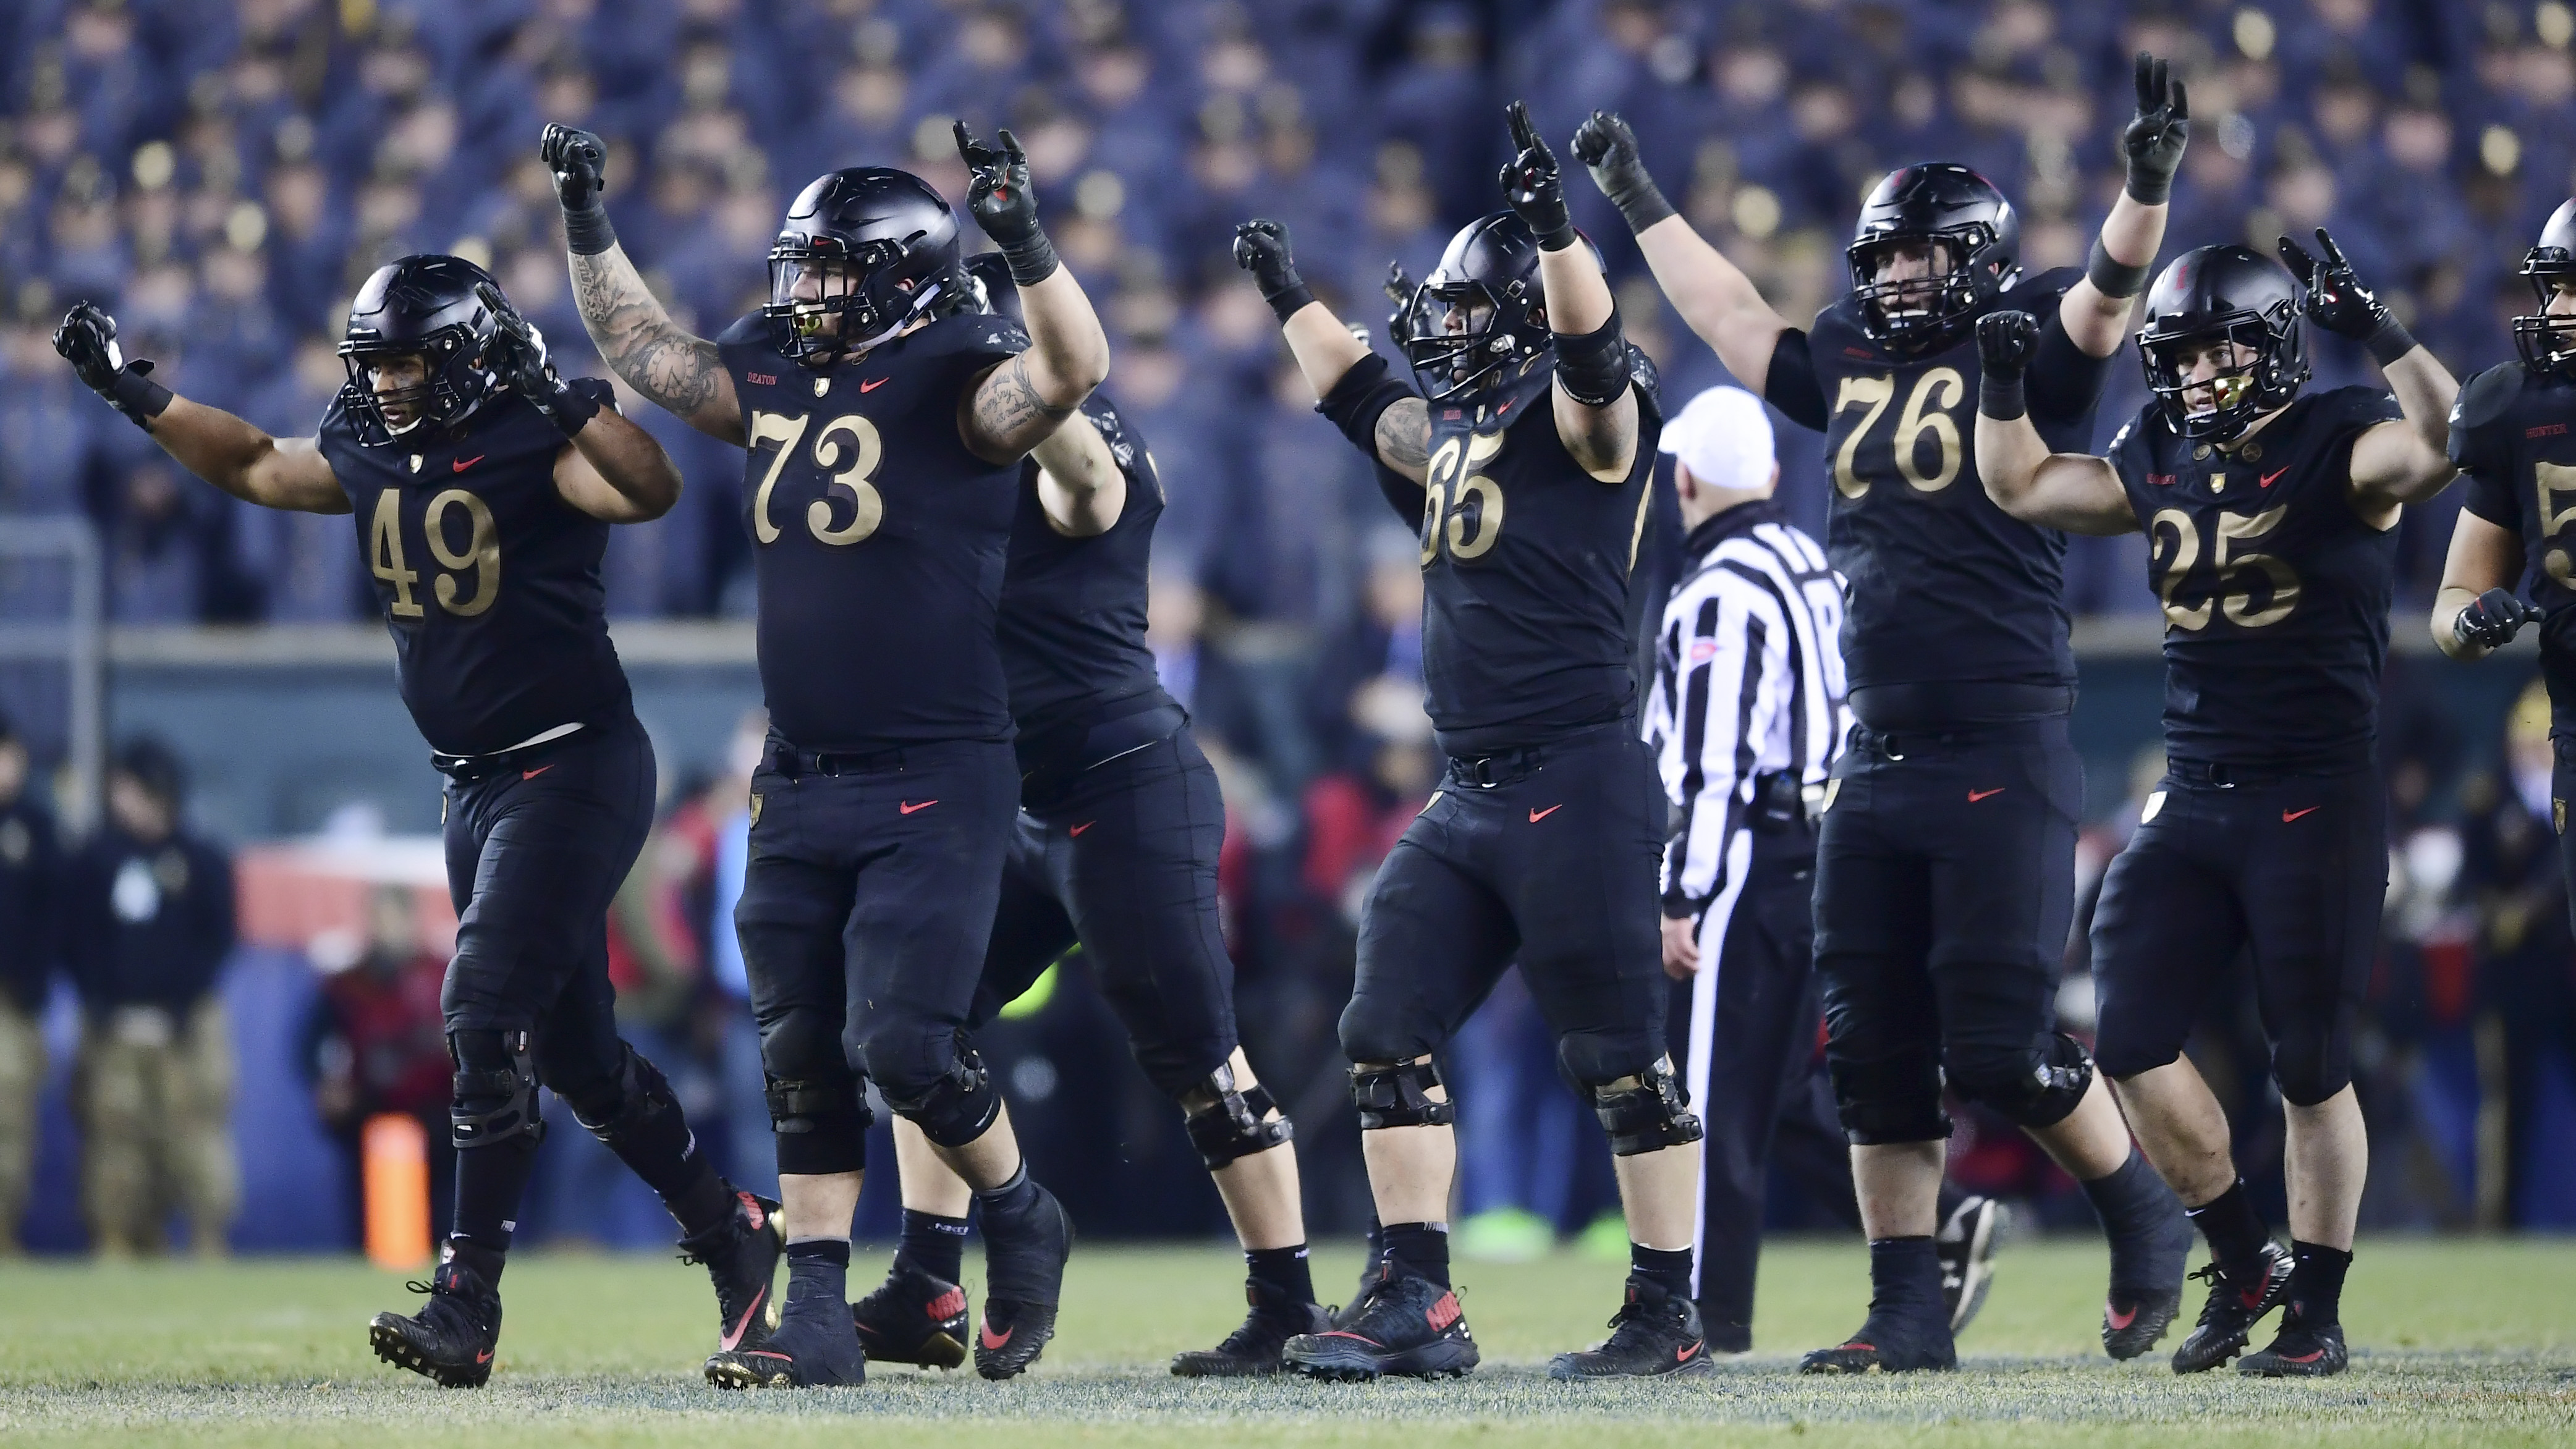 The Army Black Knights celebrate a first down at the end of the third quarter during the game against the Navy Midshipmen at Lincoln Financial Field on December 08, 2018 in Philadelphia, Pennsylvania. (Photo by Sarah Stier/Getty Images)